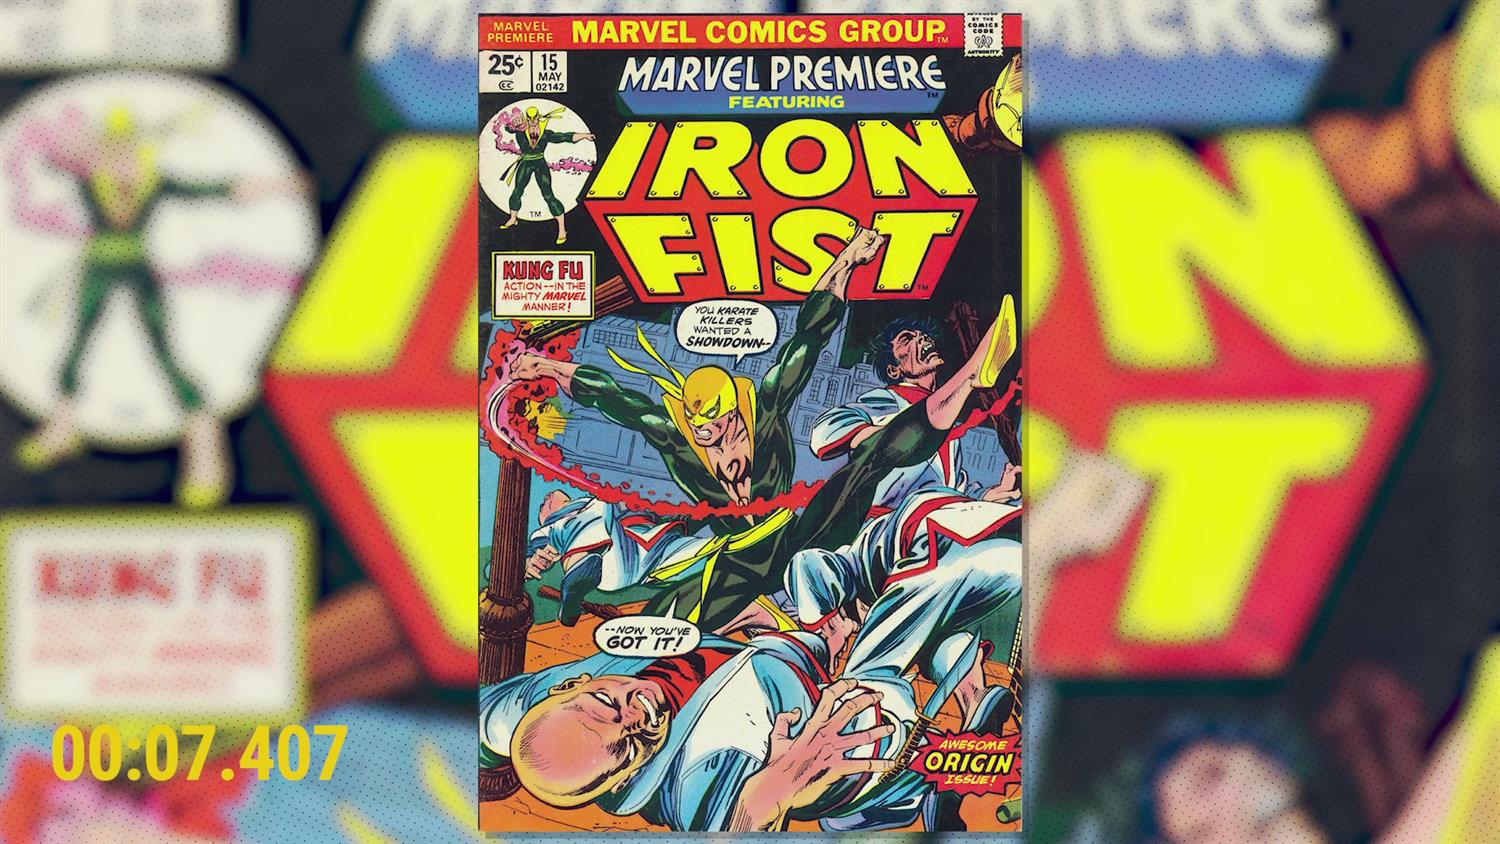 Iron Fist in 2 Minutes